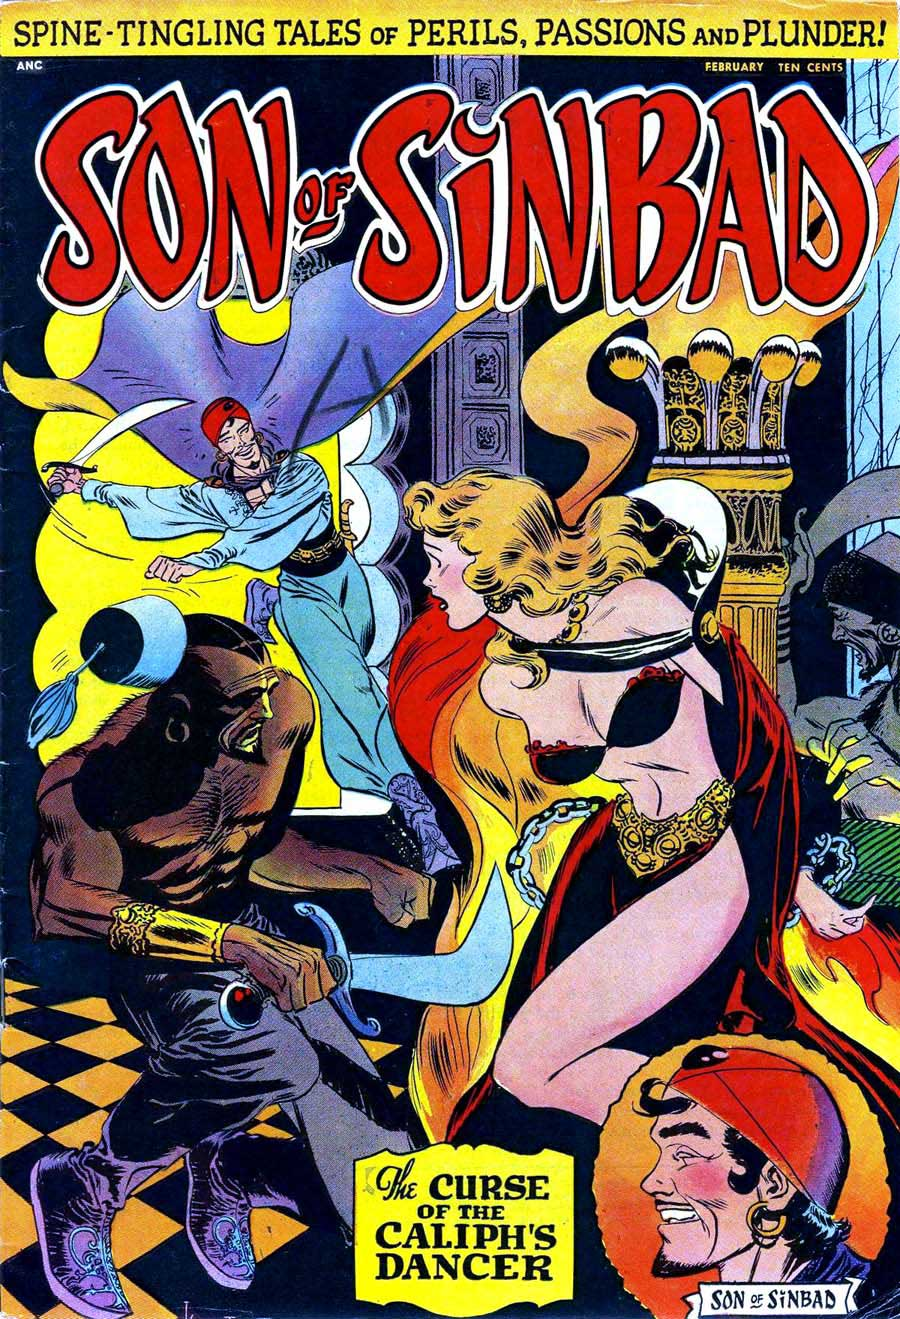 Son of Sinbad (1950) #1 from ANC. Cover by Joe Kubert.